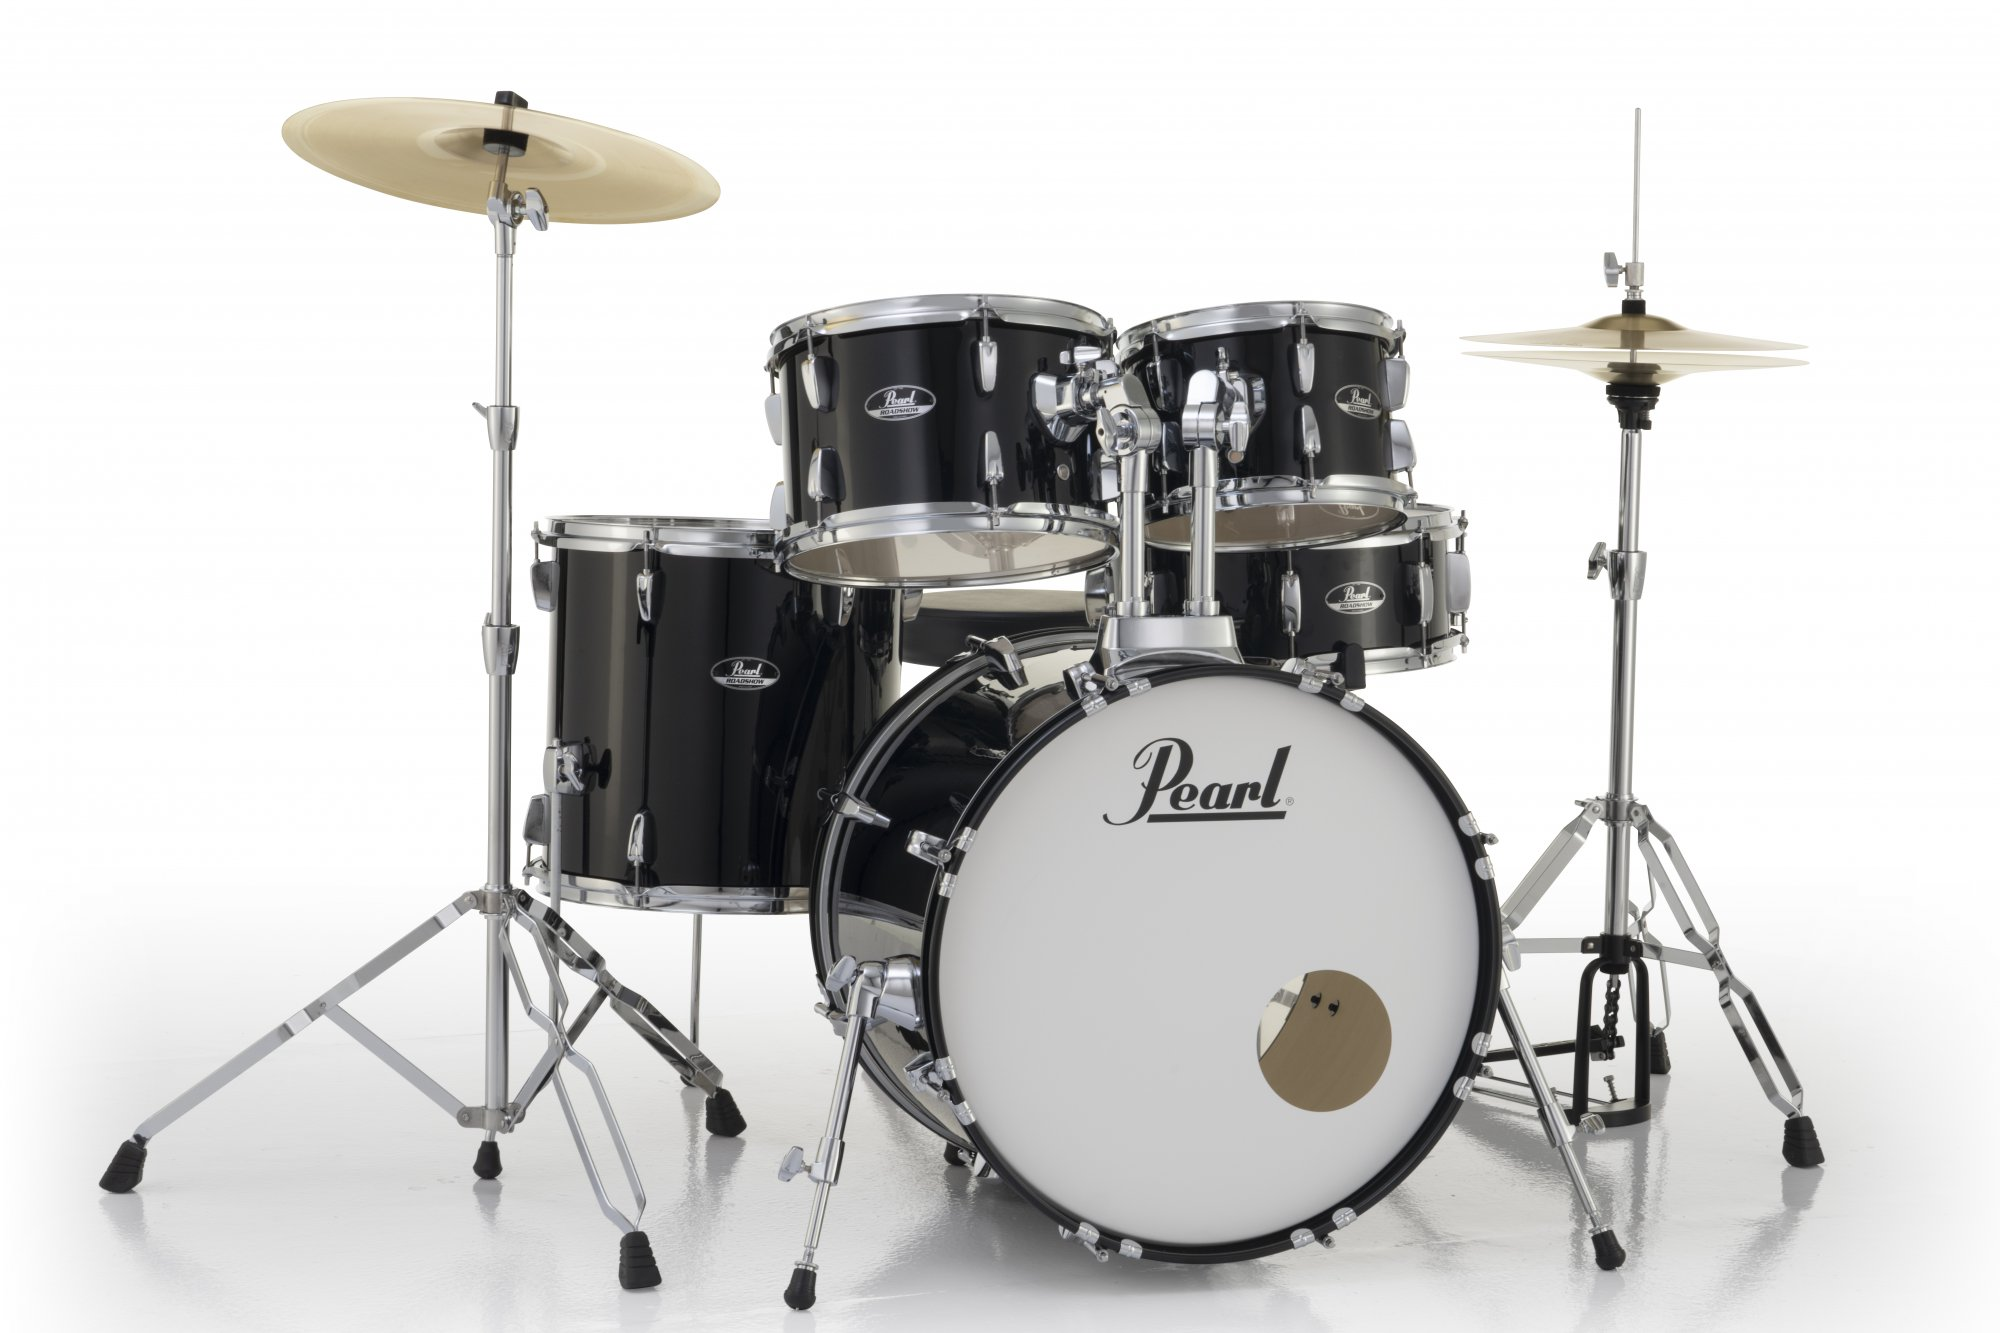 Roadshow 5-pc. Drum Set with Hardware and Cymbals